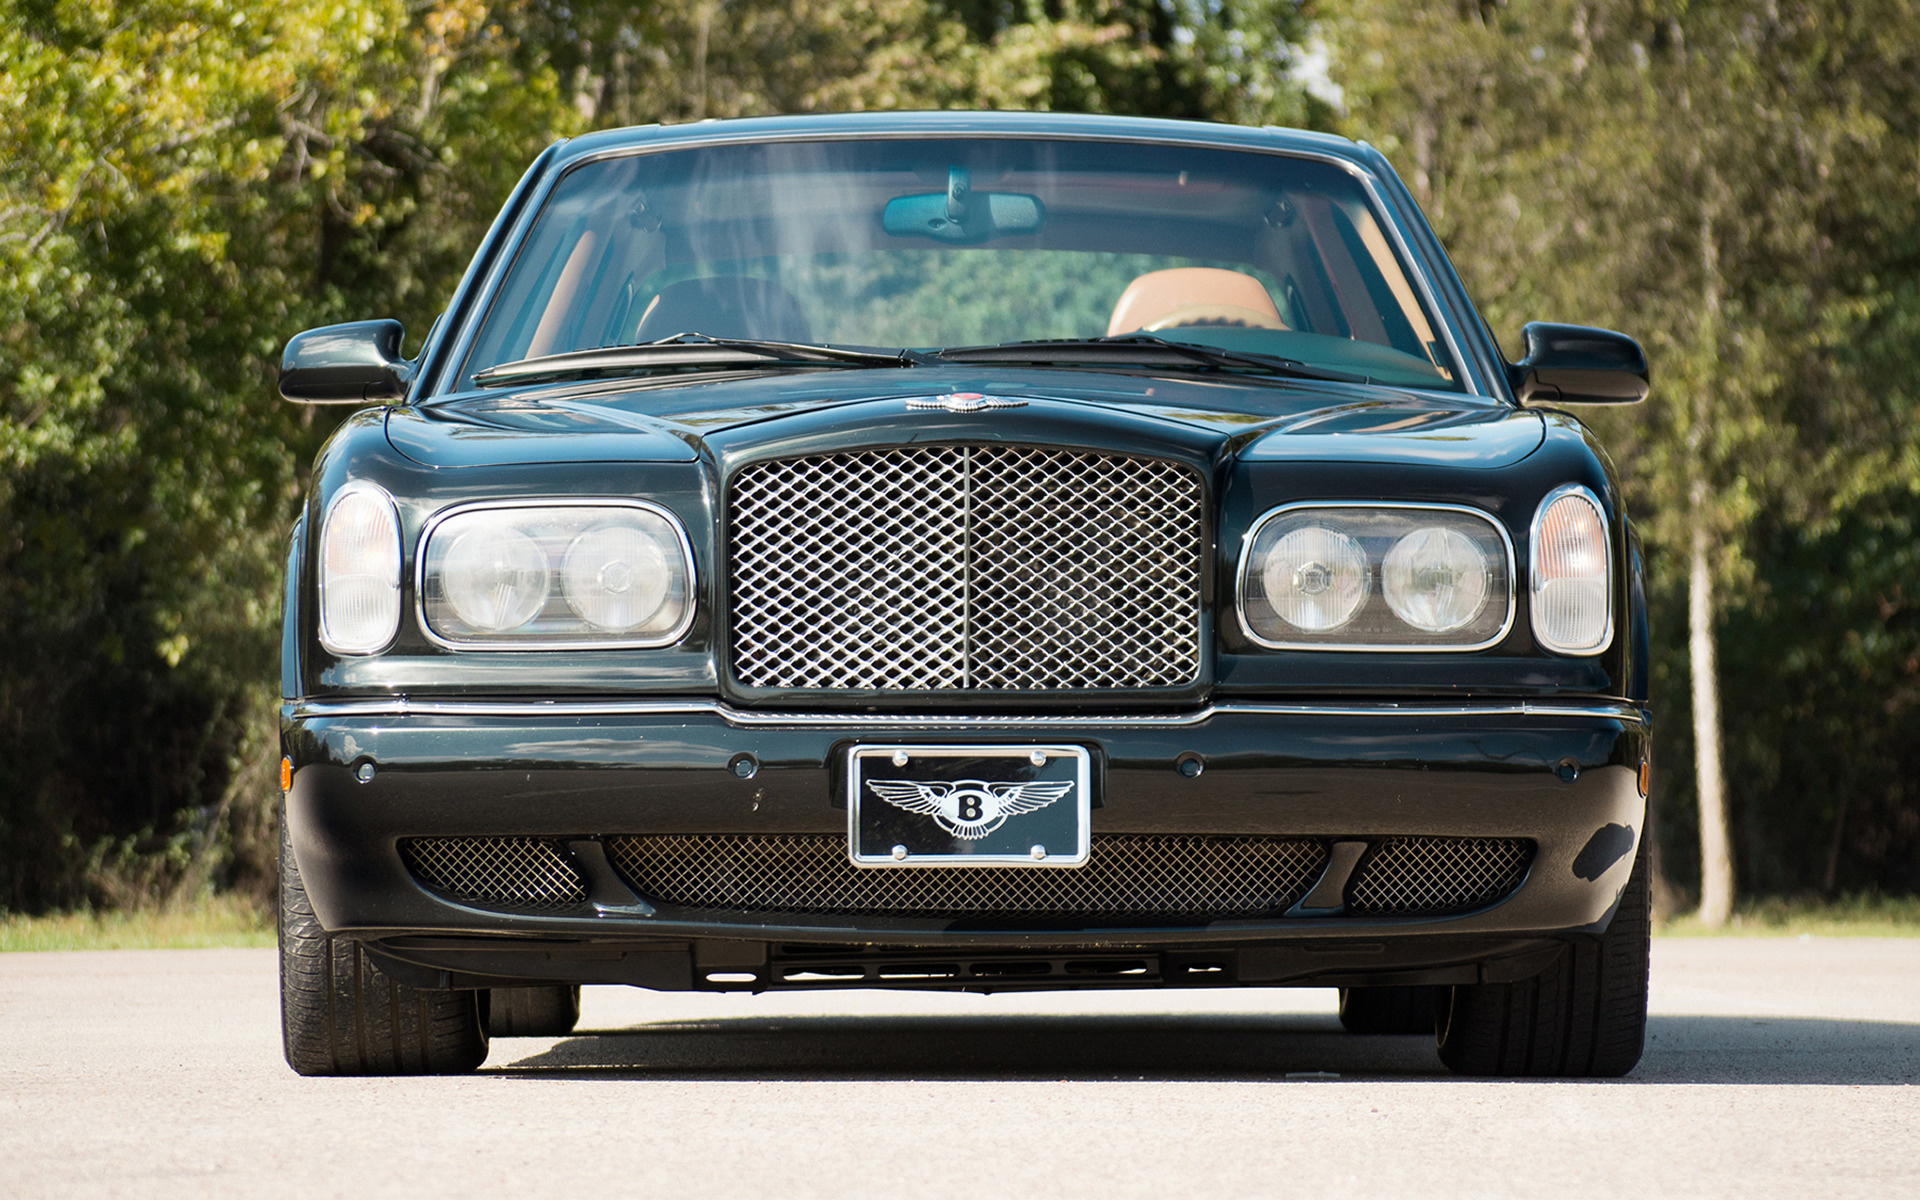 2008 bentley arnage image collections hd cars wallpaper bentley arnage le mans 2001 us wallpapers and hd images car pixel wide 85 bentley arnage vanachro Choice Image